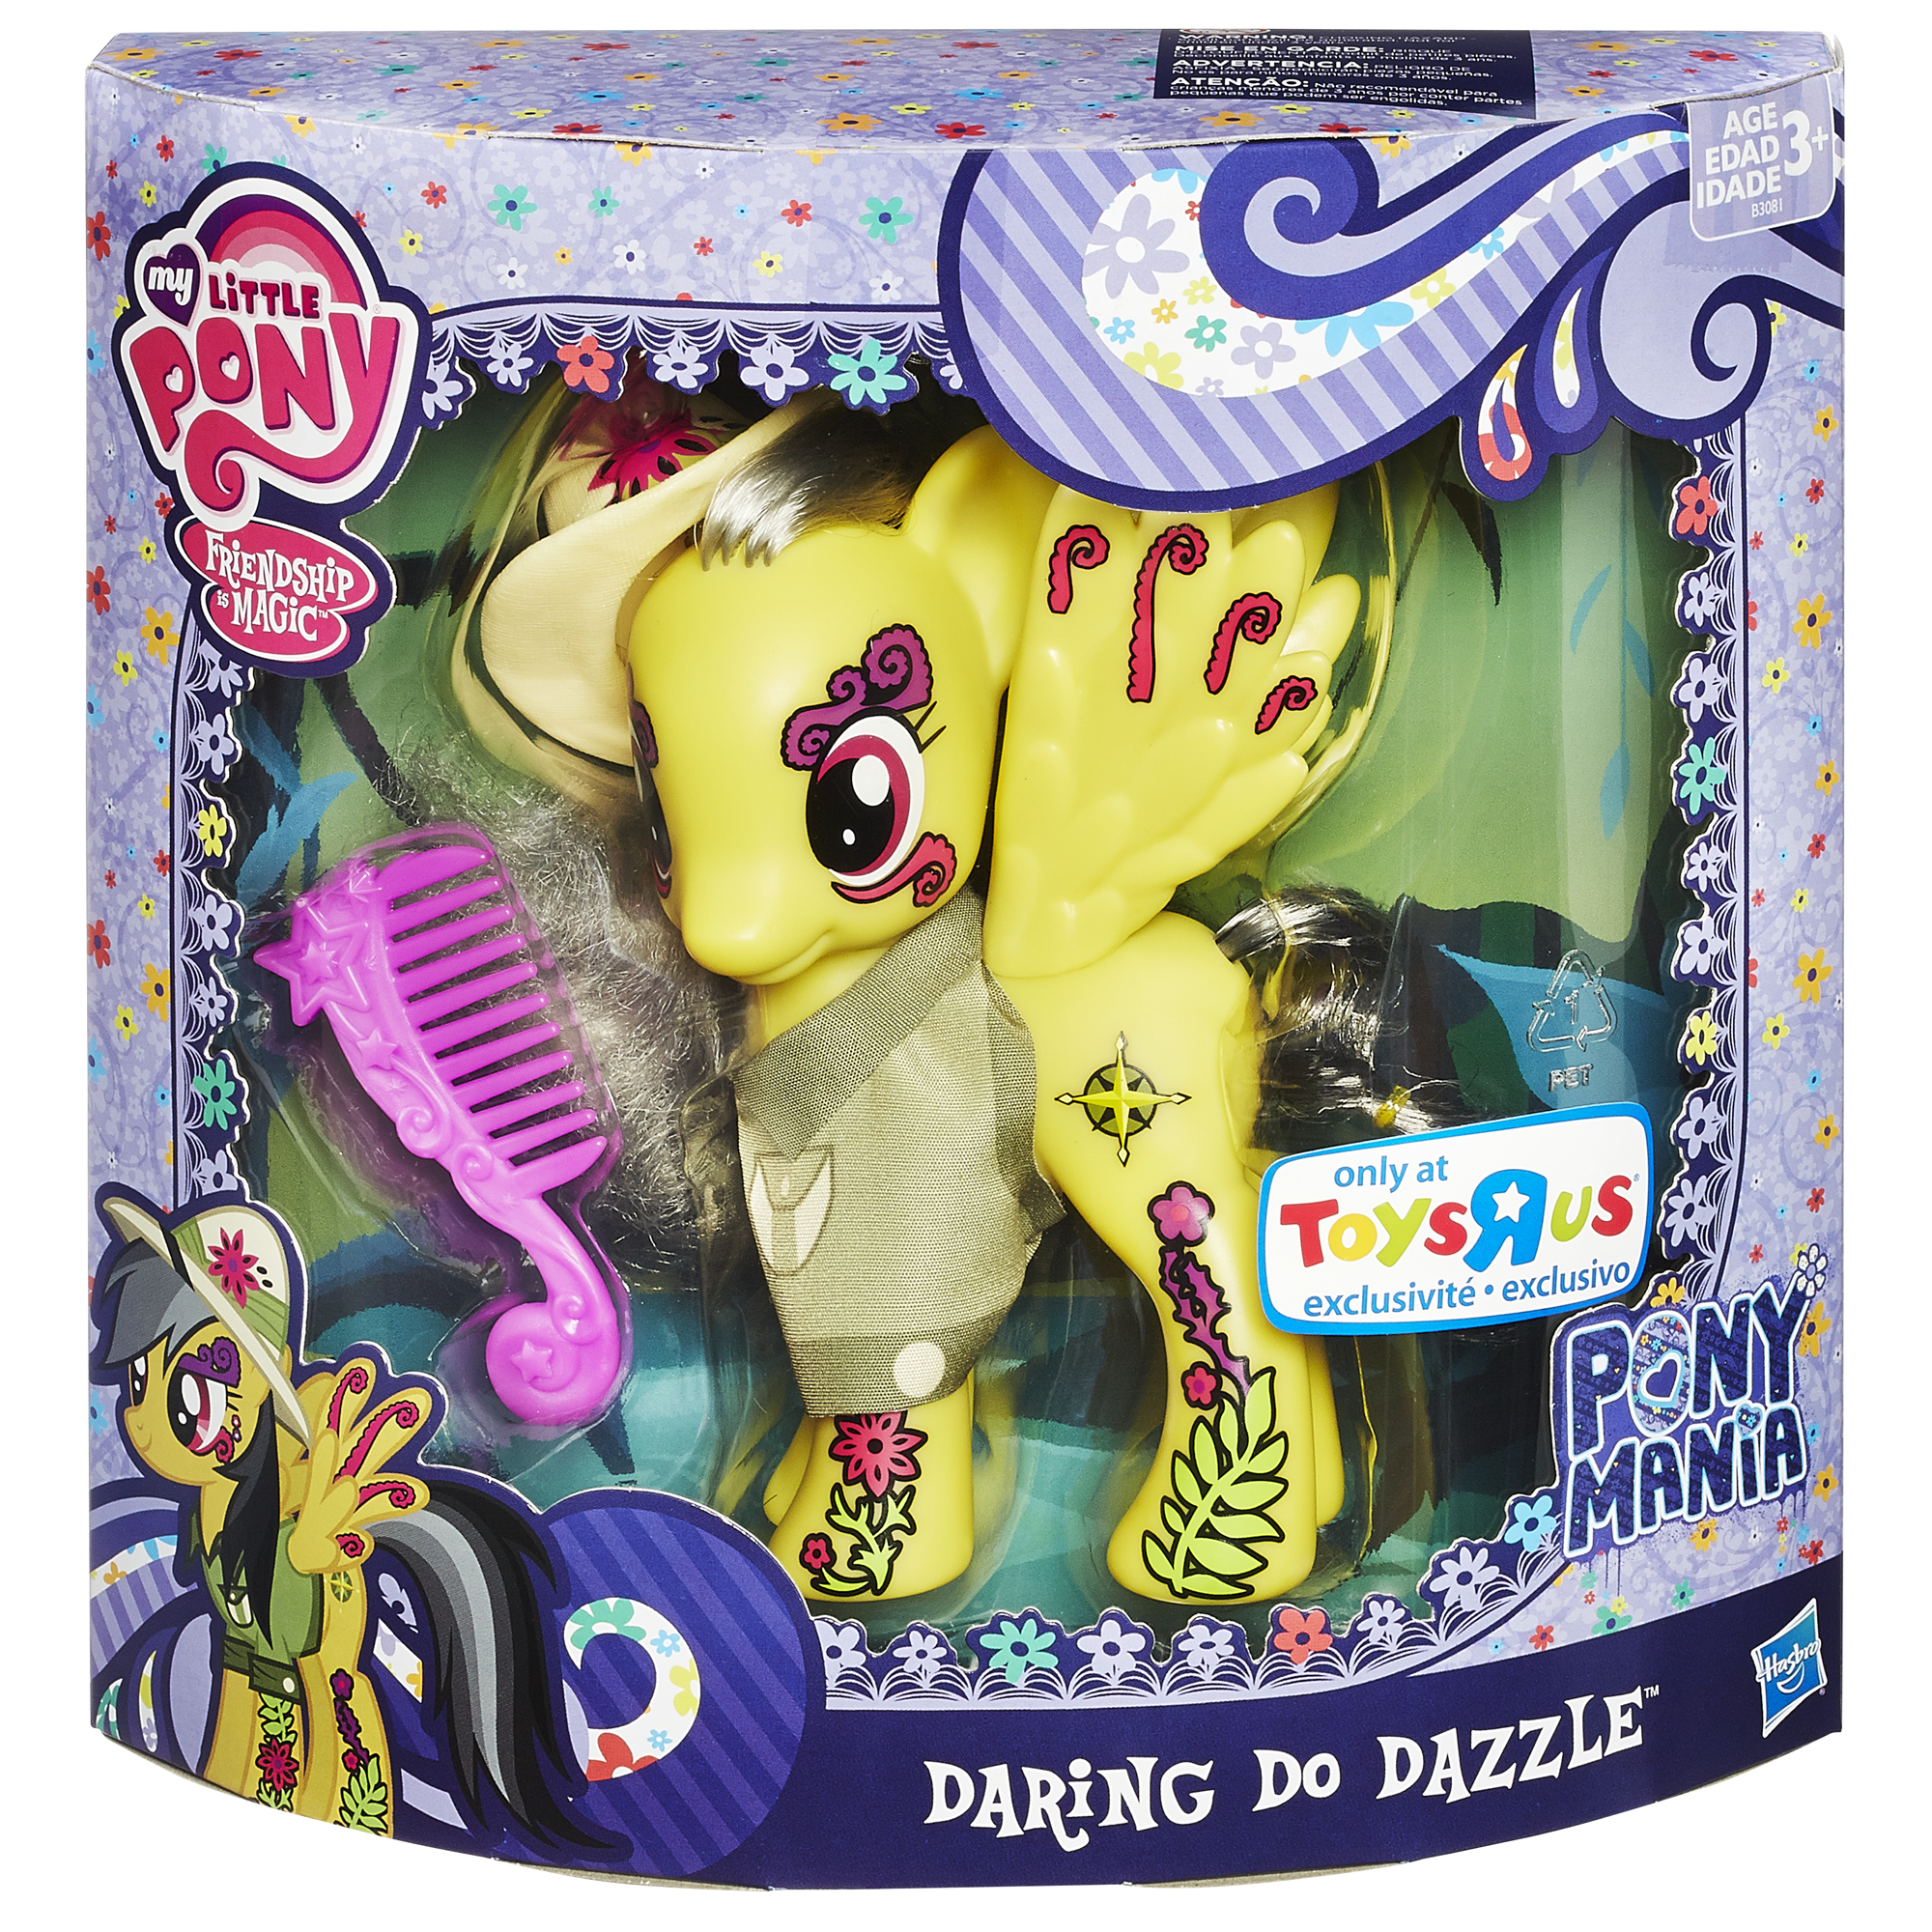 mlp-daring-do-dazzle-in-package--141319